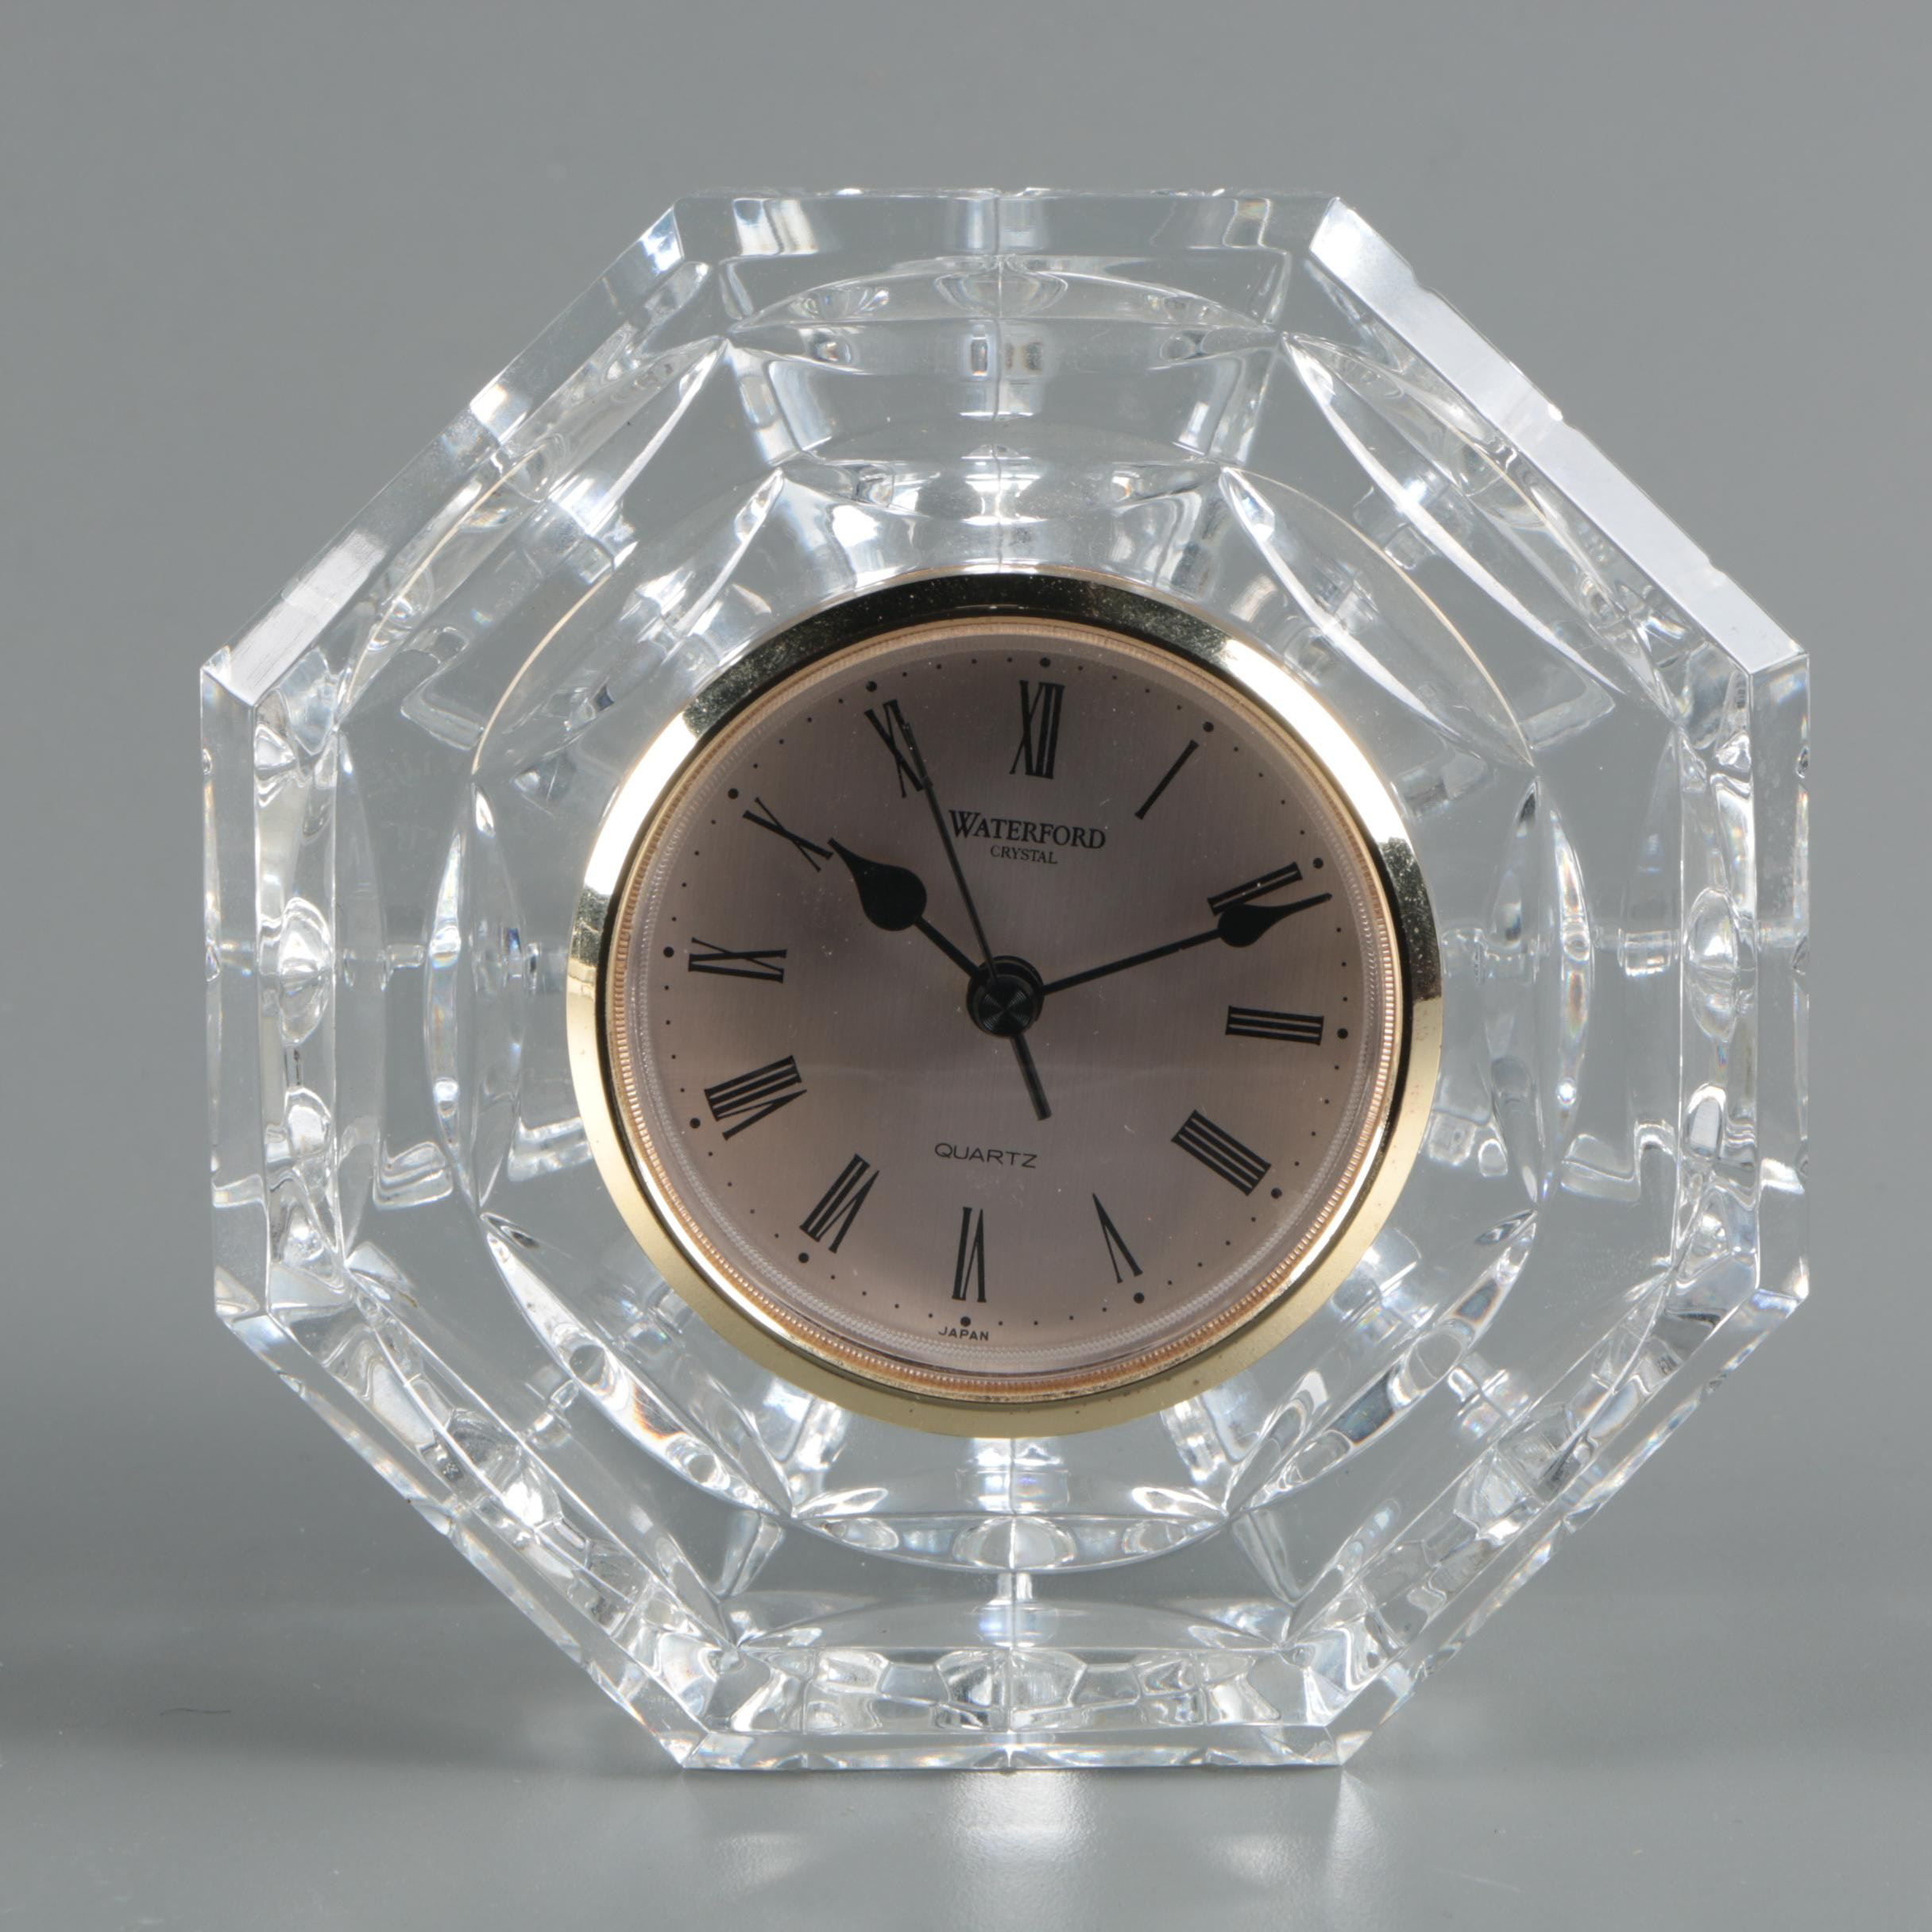 Waterford Crystal Octagonal Desk Clock